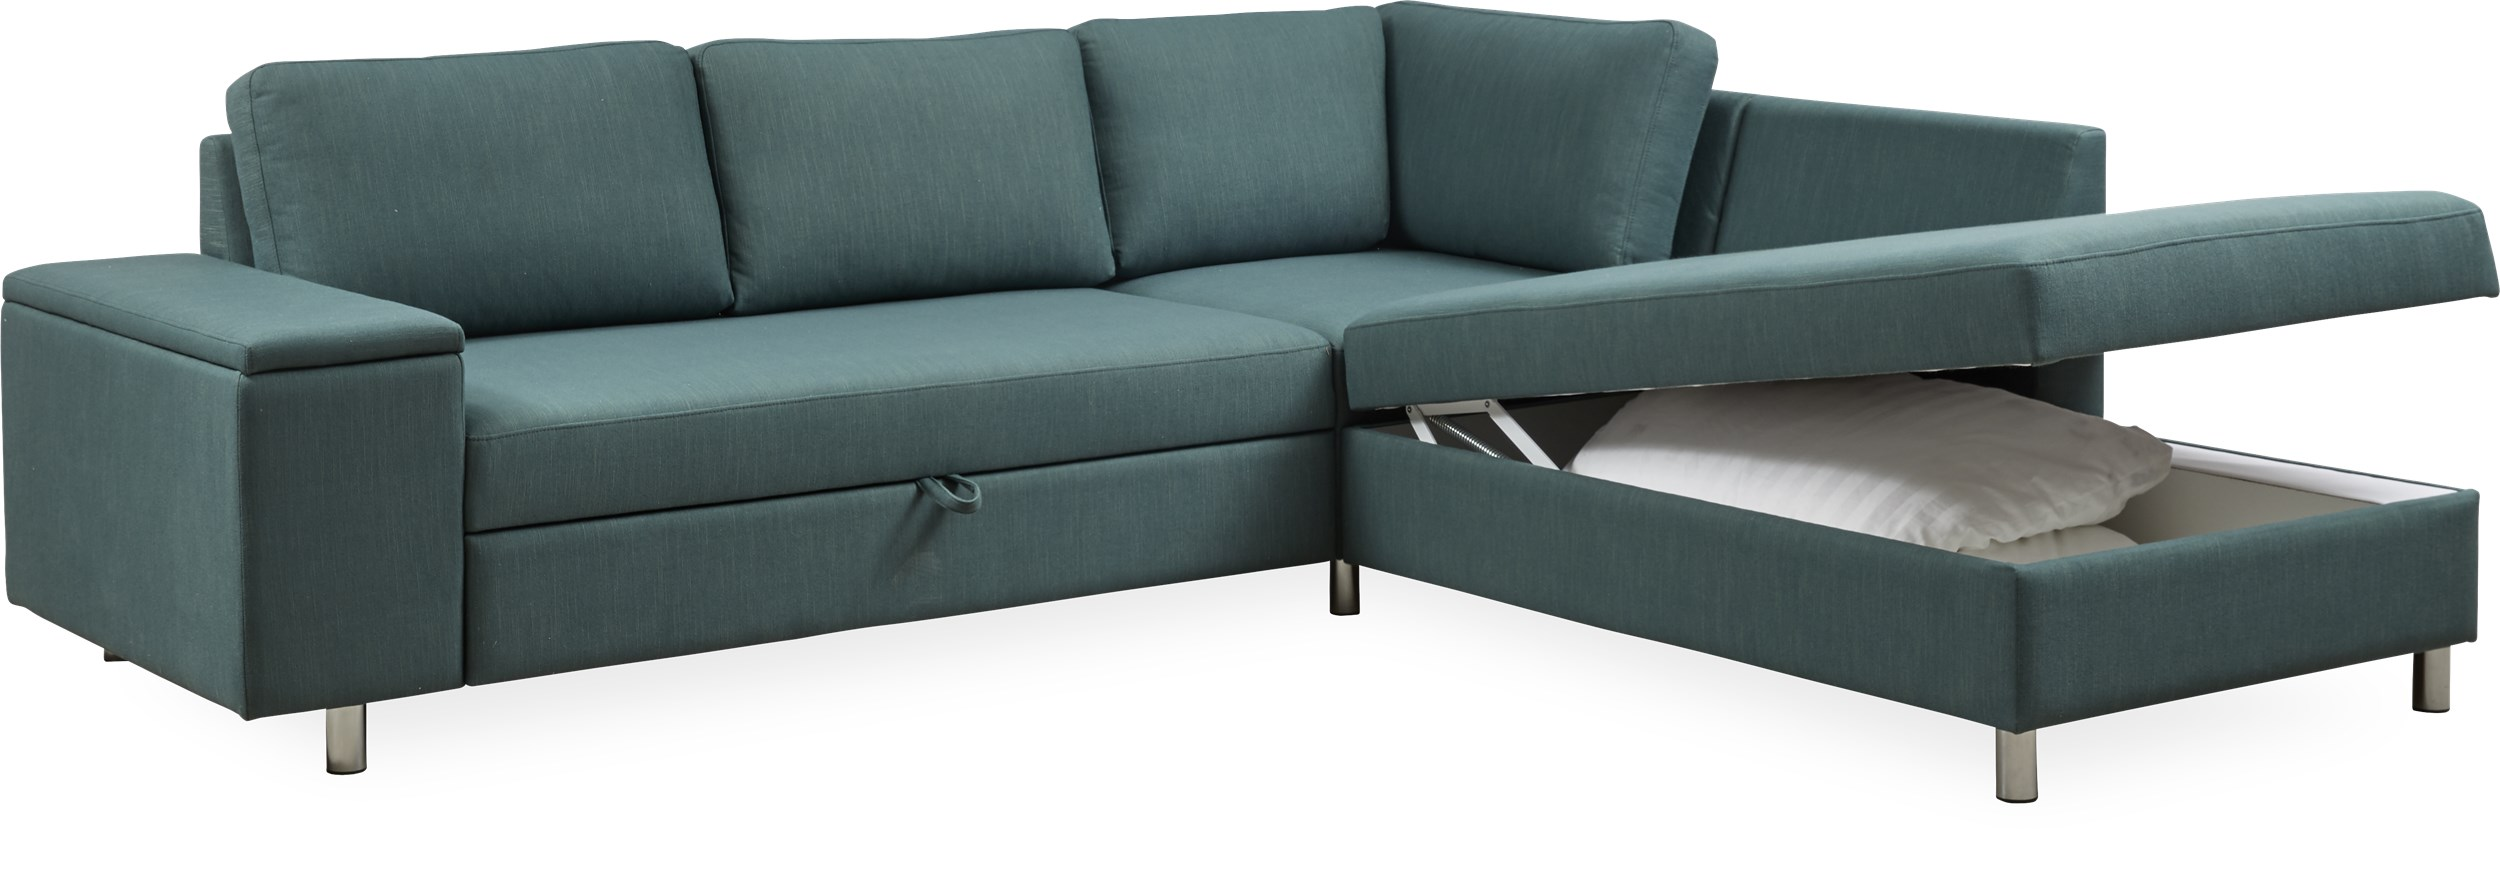 Devon Flex 460 Sovesofa